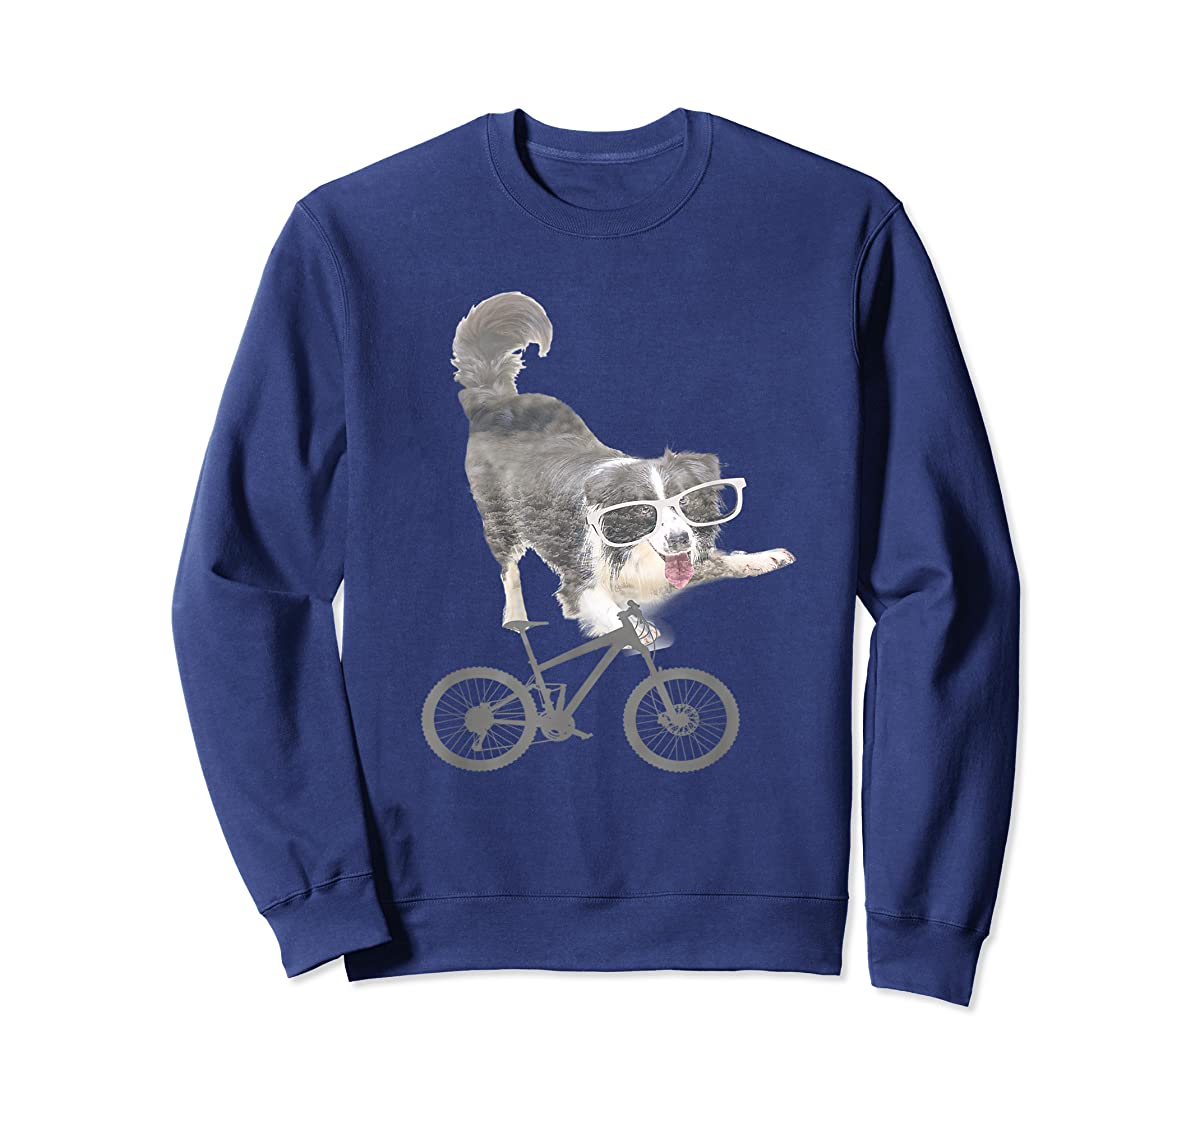 Border collie on a Bicycle T-shirt-Sweatshirt-Navy